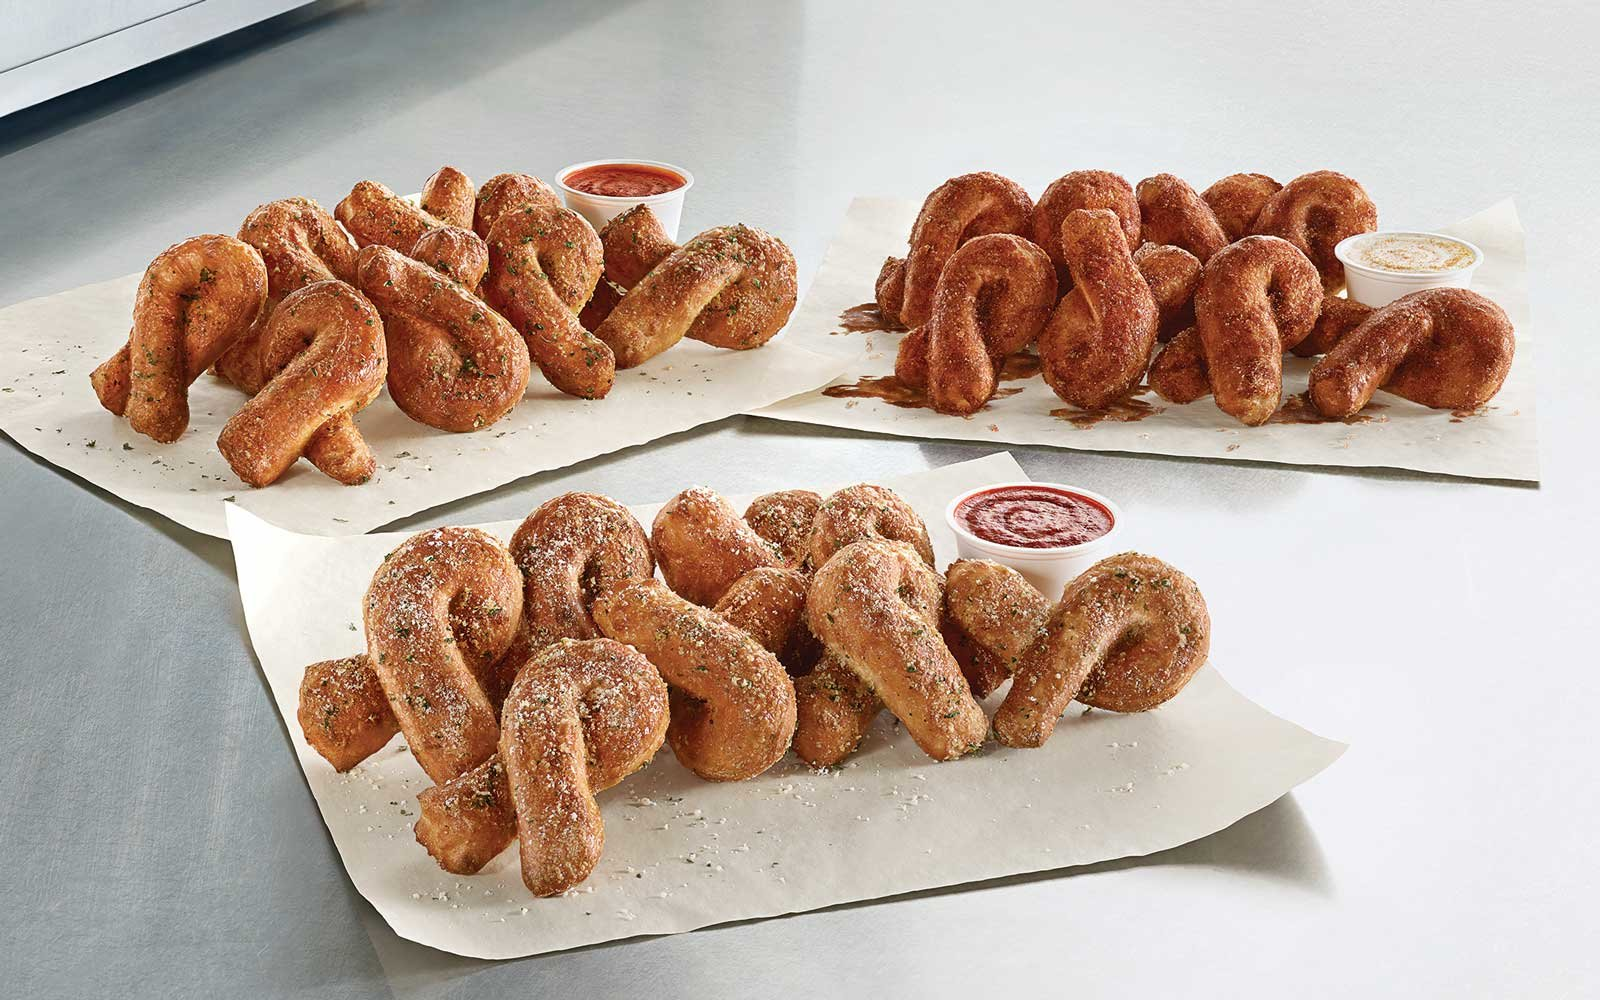 Domino's Bread Twists